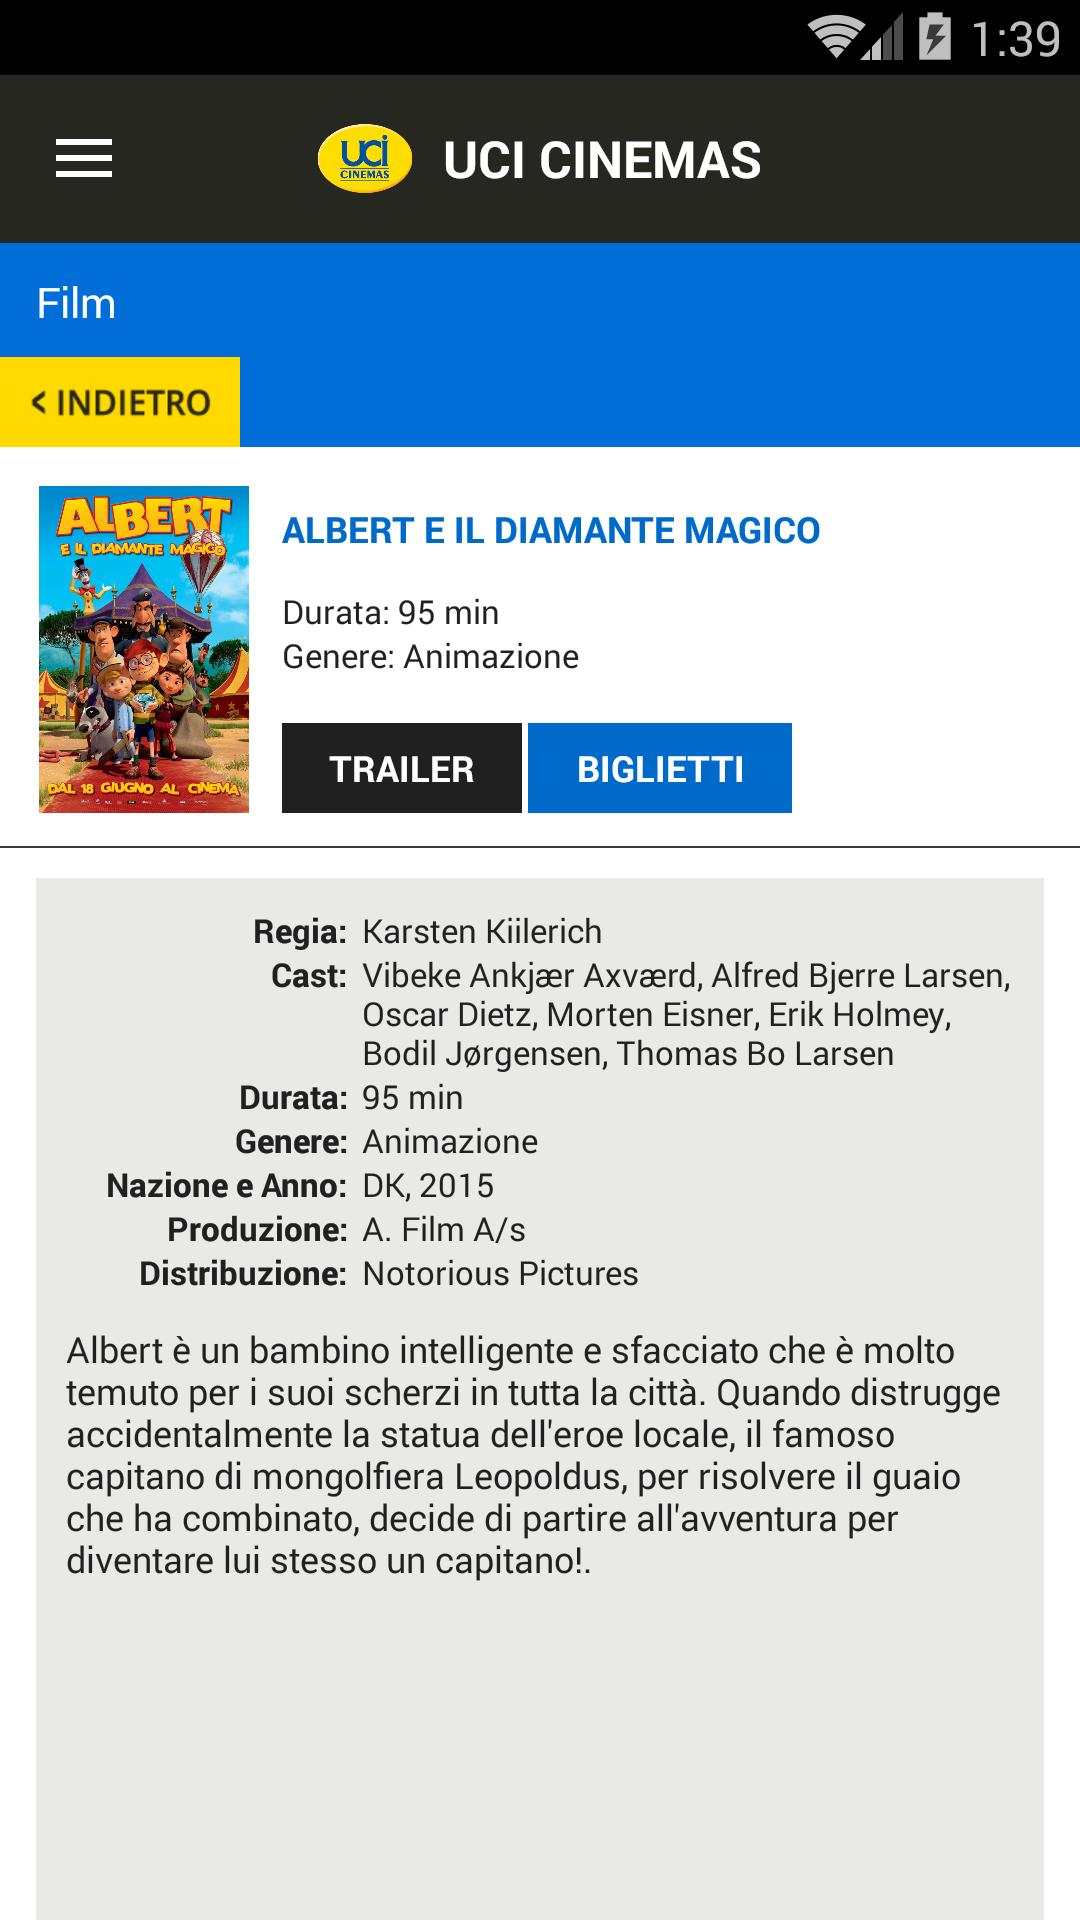 UCI CINEMAS ITALIA for Android - APK Download